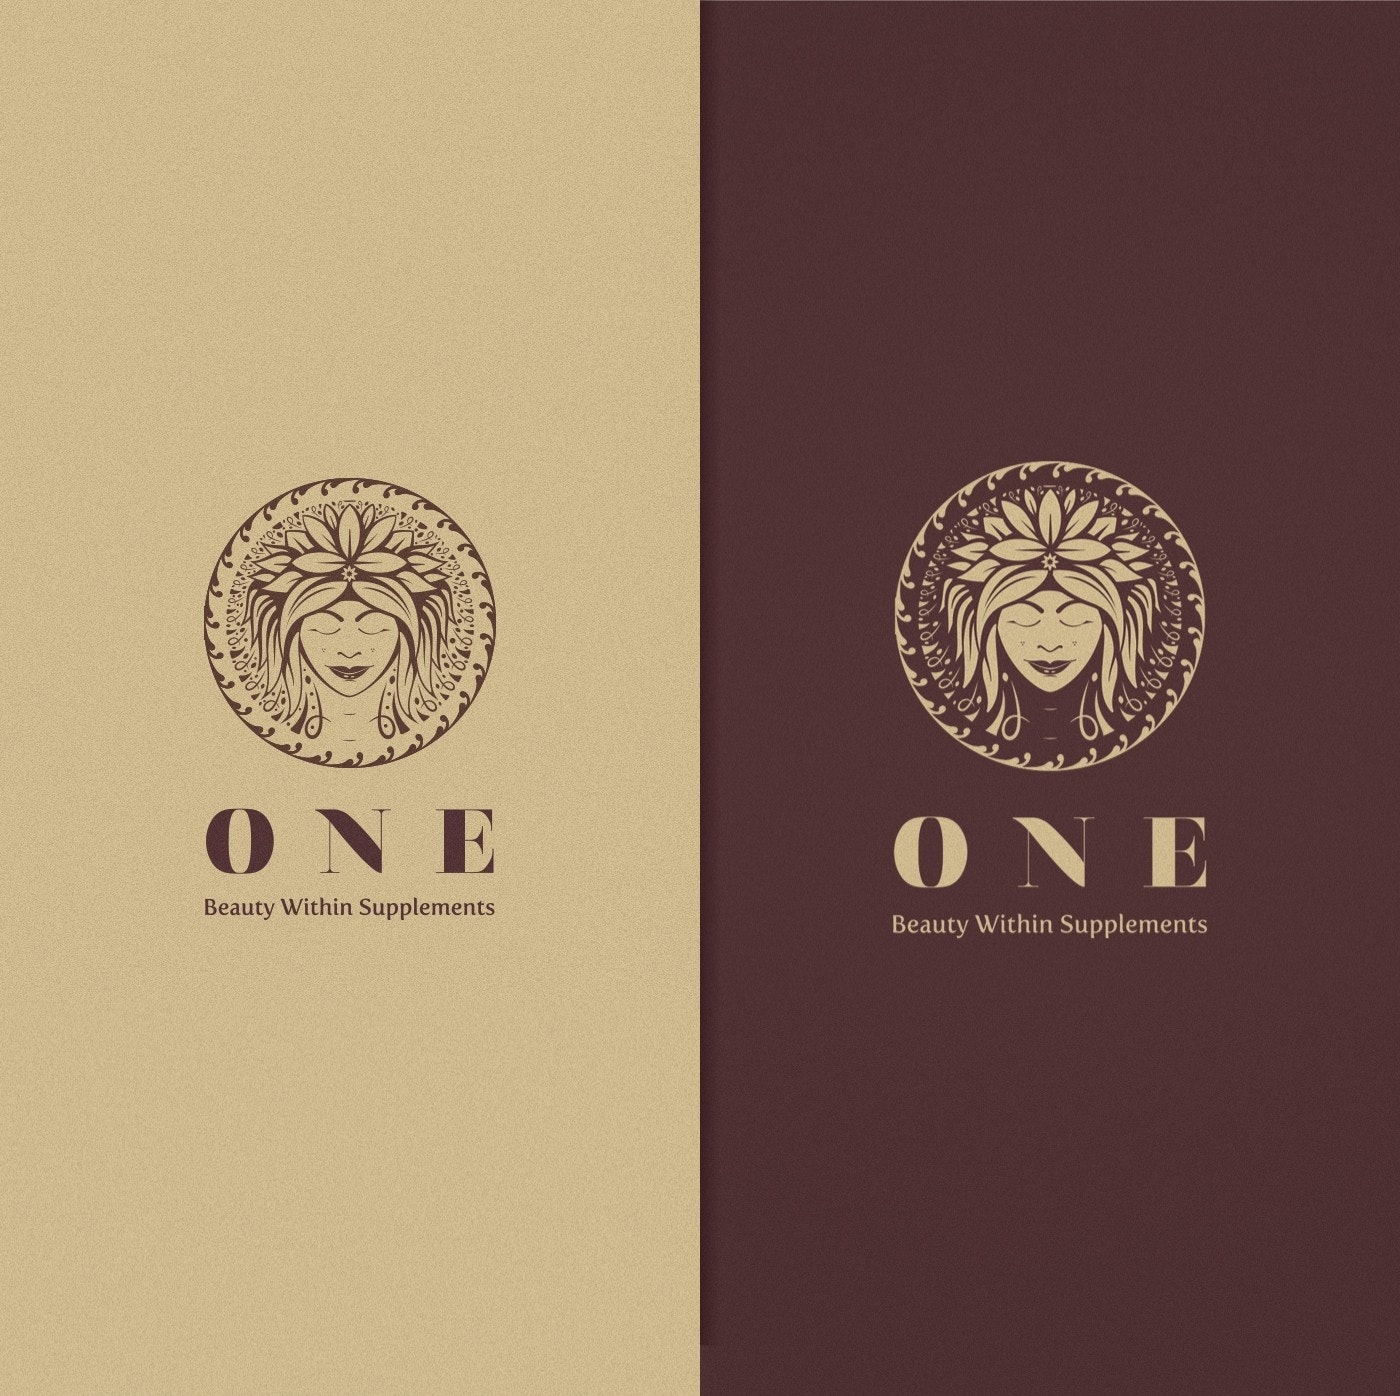 ONE beauty brand logo